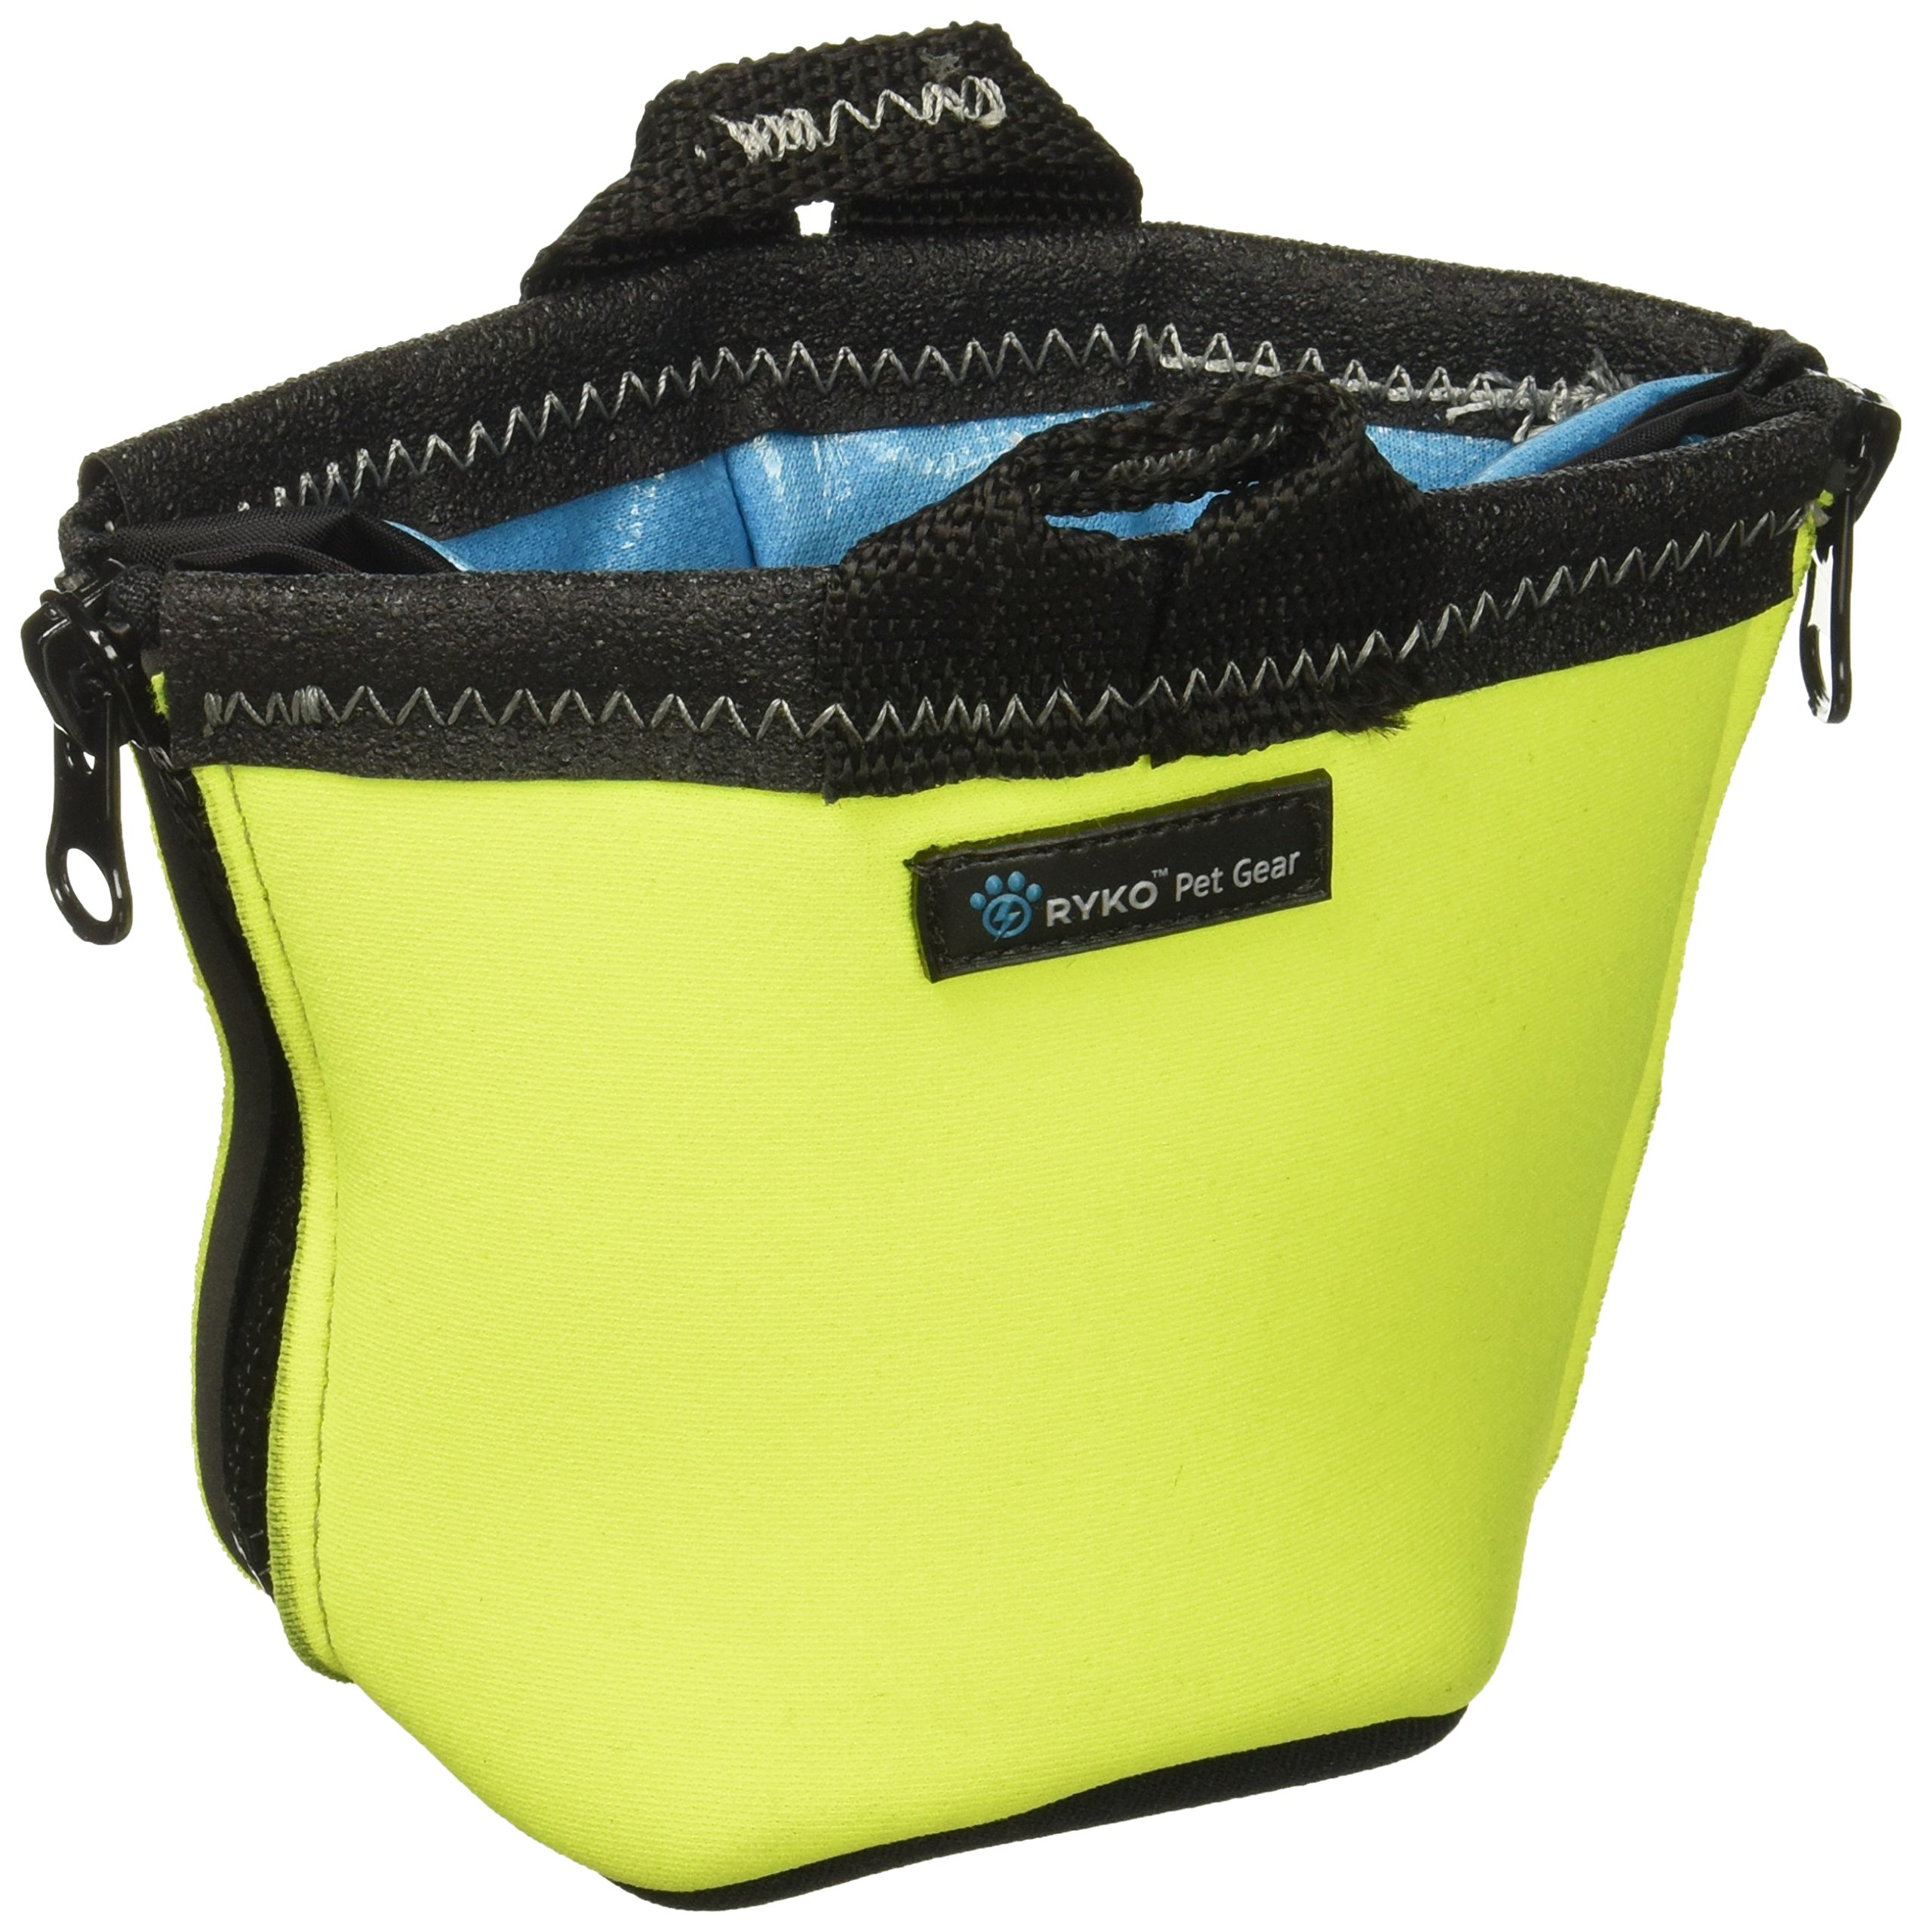 PaxBowl Portable Dog Bowl Fits Nalgene and HydroFlask Travel Outdoors for Hiking Hydration and Insulation, Collapsible, BPA Free Leak Free Liner, fits 32-40oz Water Bottles, RYKO Pet Gear (Yellow)